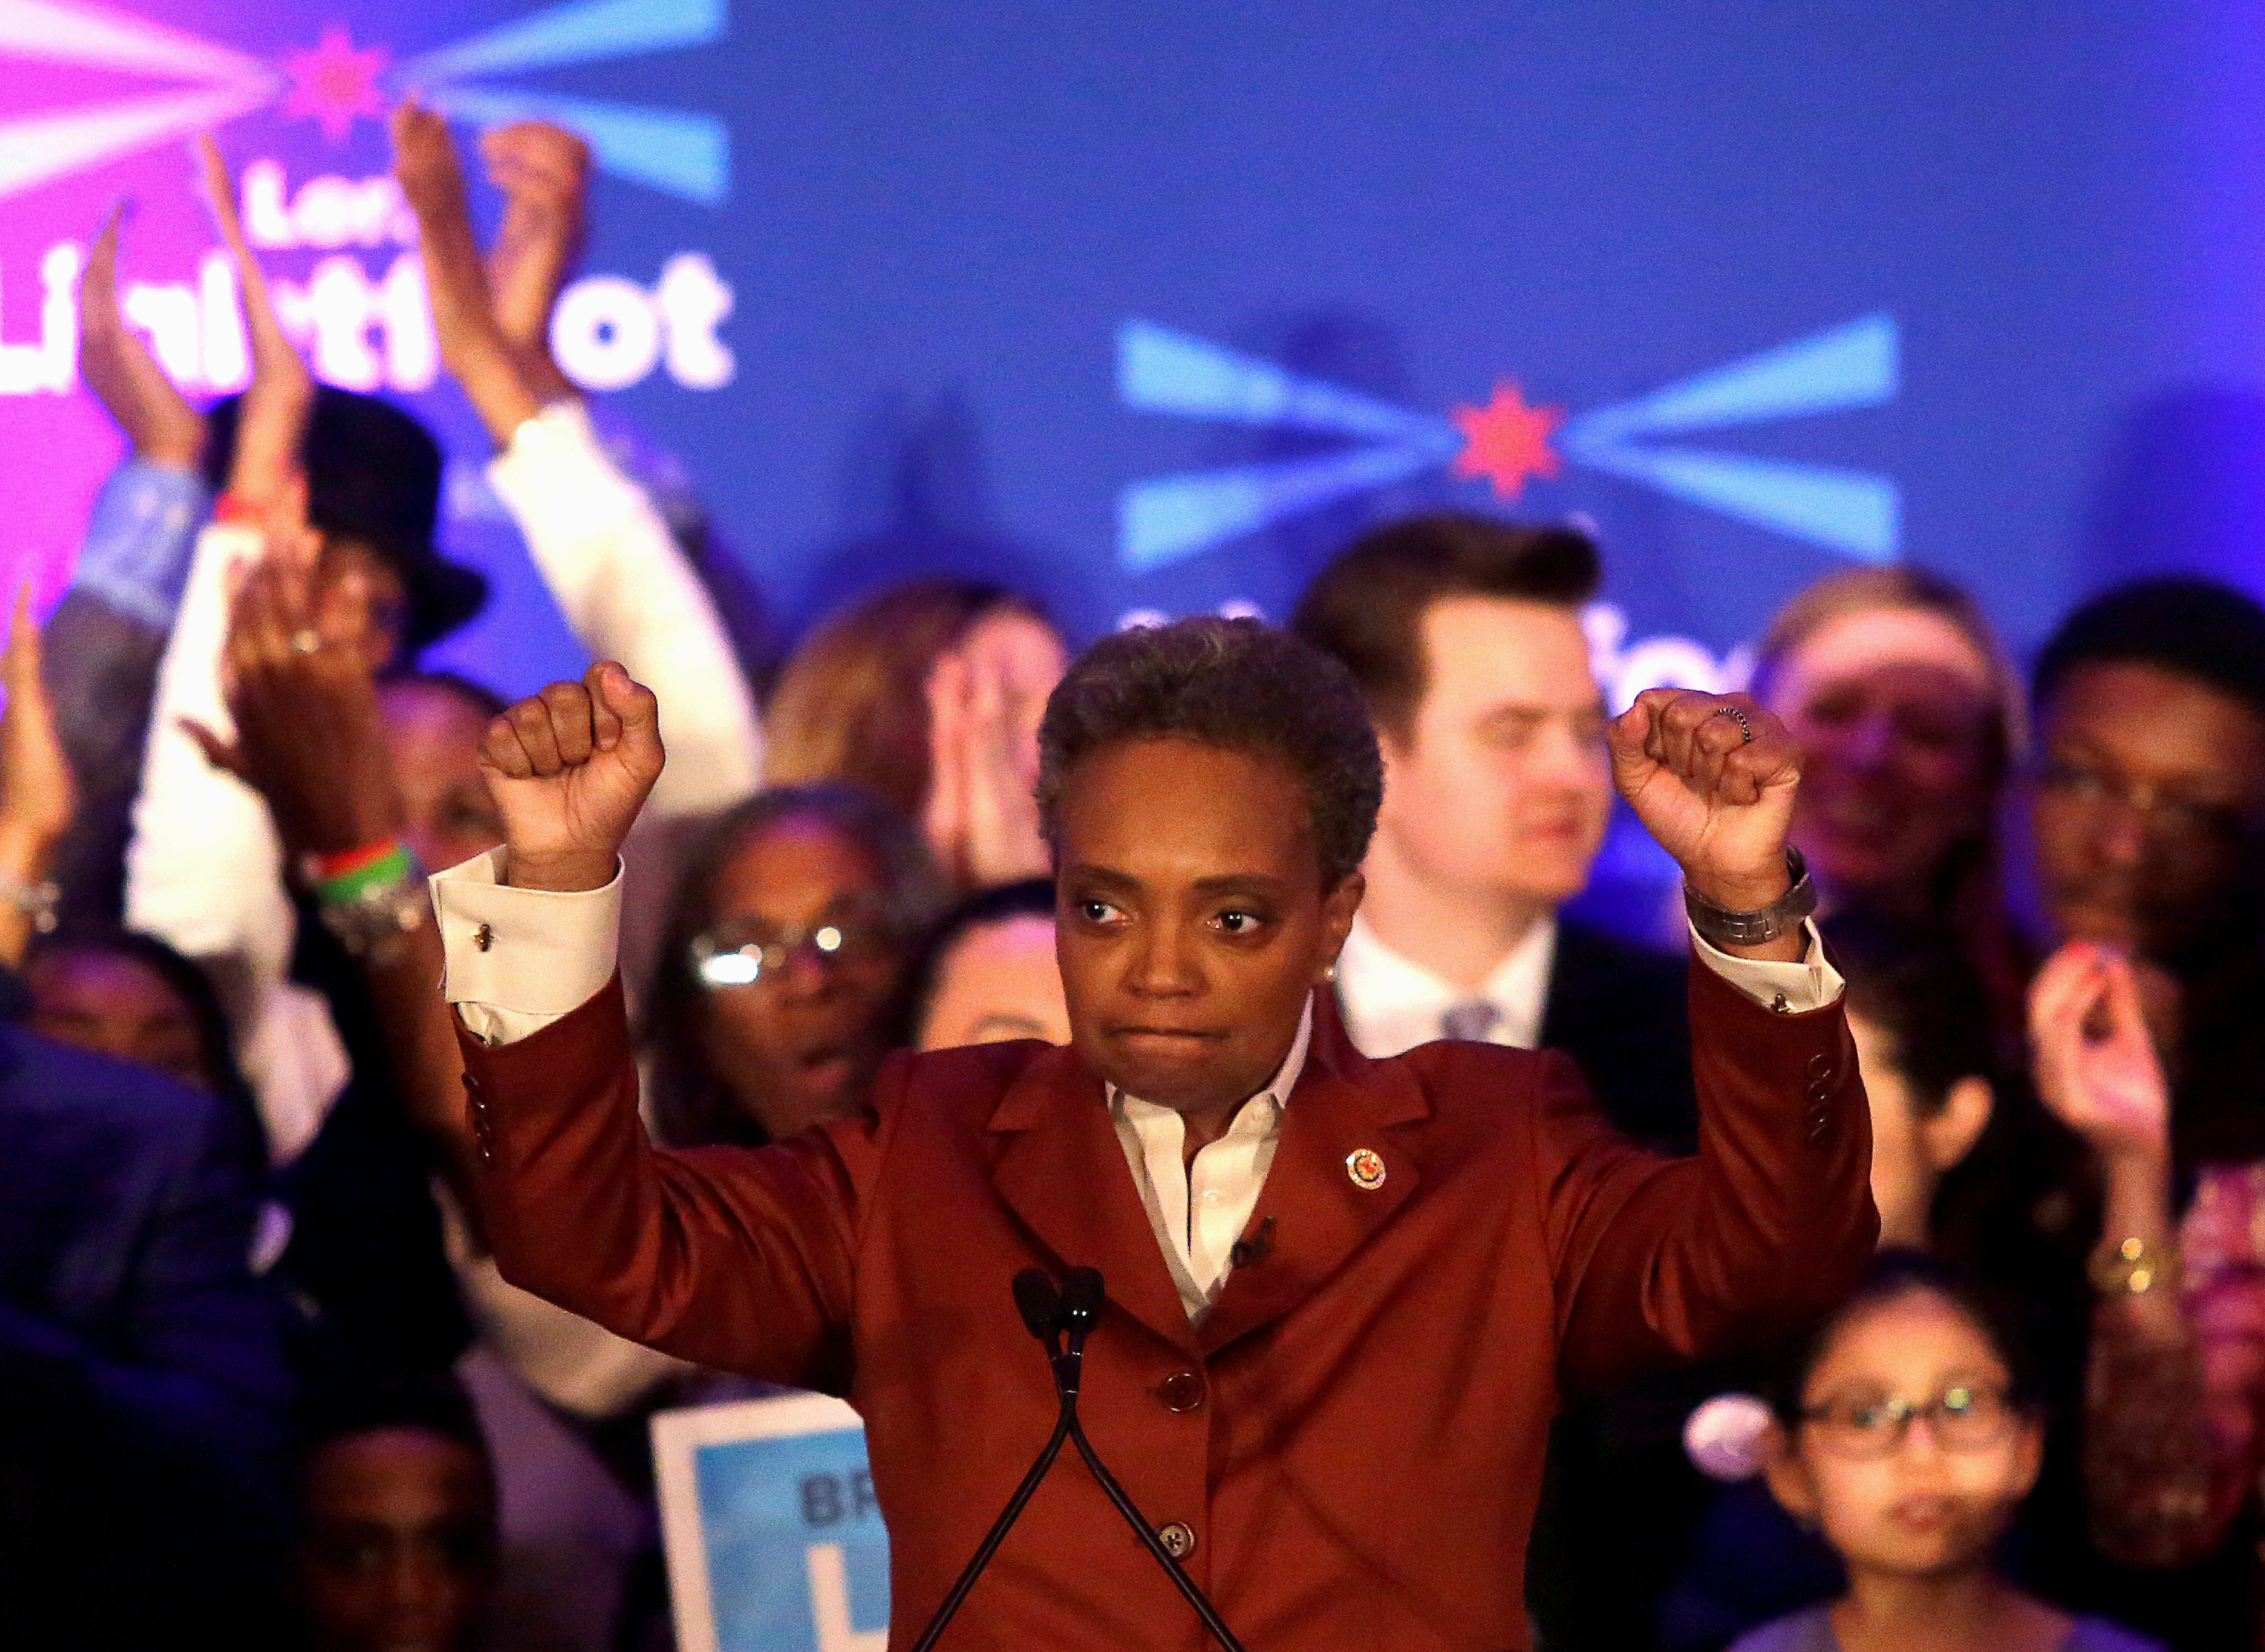 Mayoral candidate Lori Lightfoot clinches her fists as she speaks during her election night celebration after defeating her challenger Toni Preckwinkle in a runoff election in Chicago, Illinois, U.S., April 2, 2019.